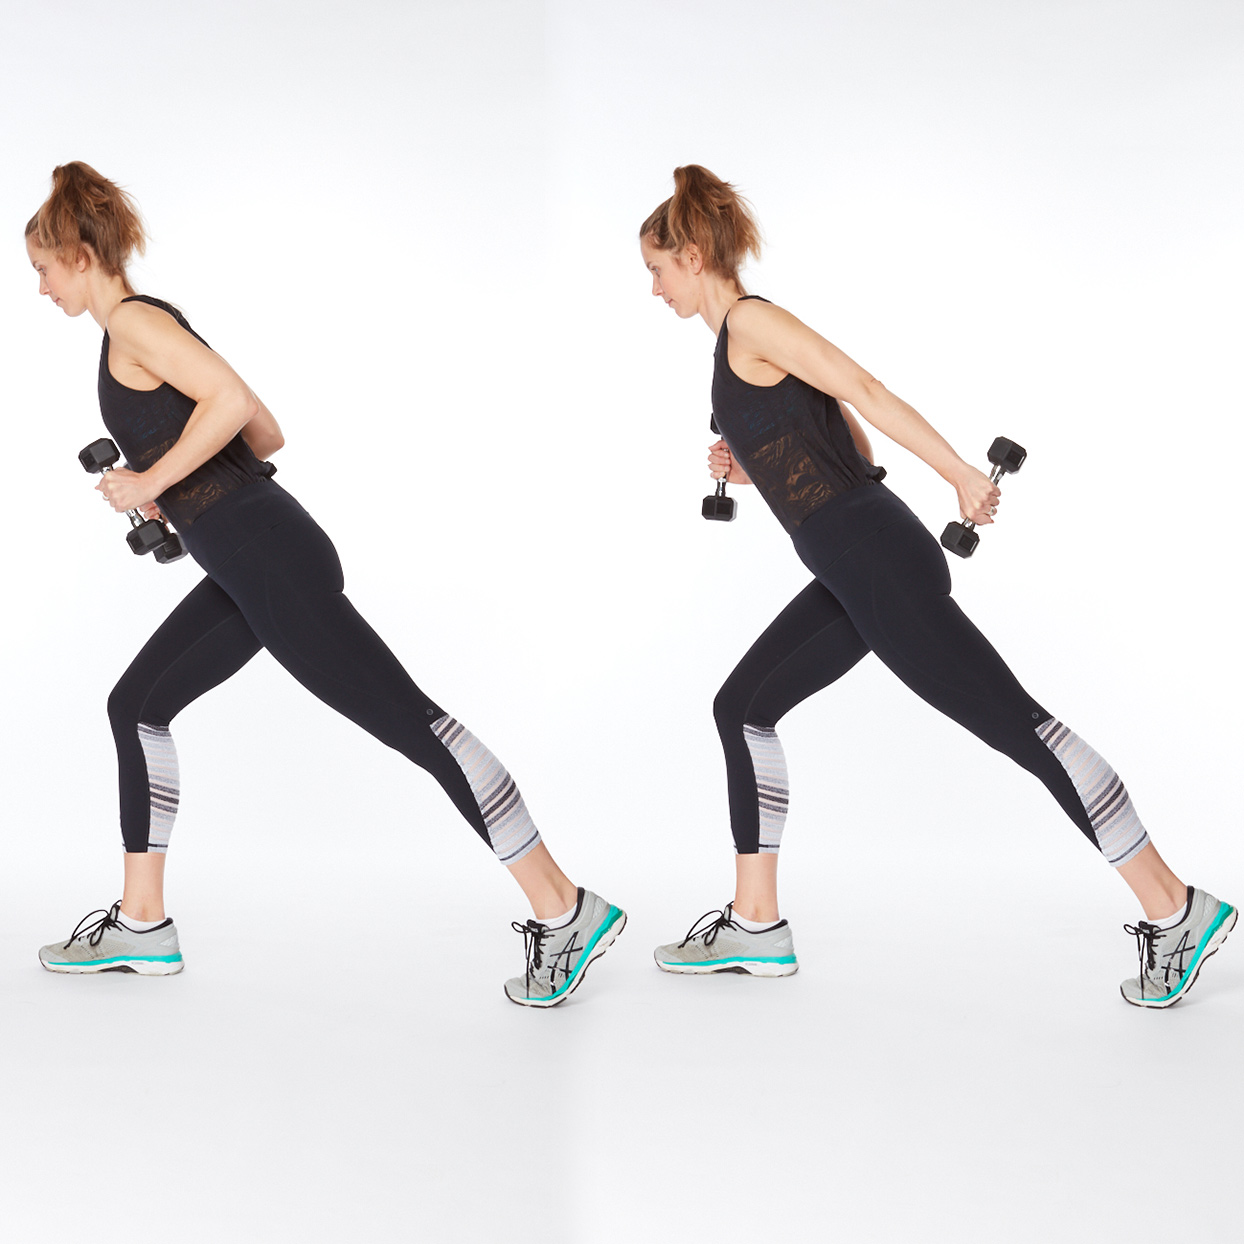 triceps extension best exercise for women arms